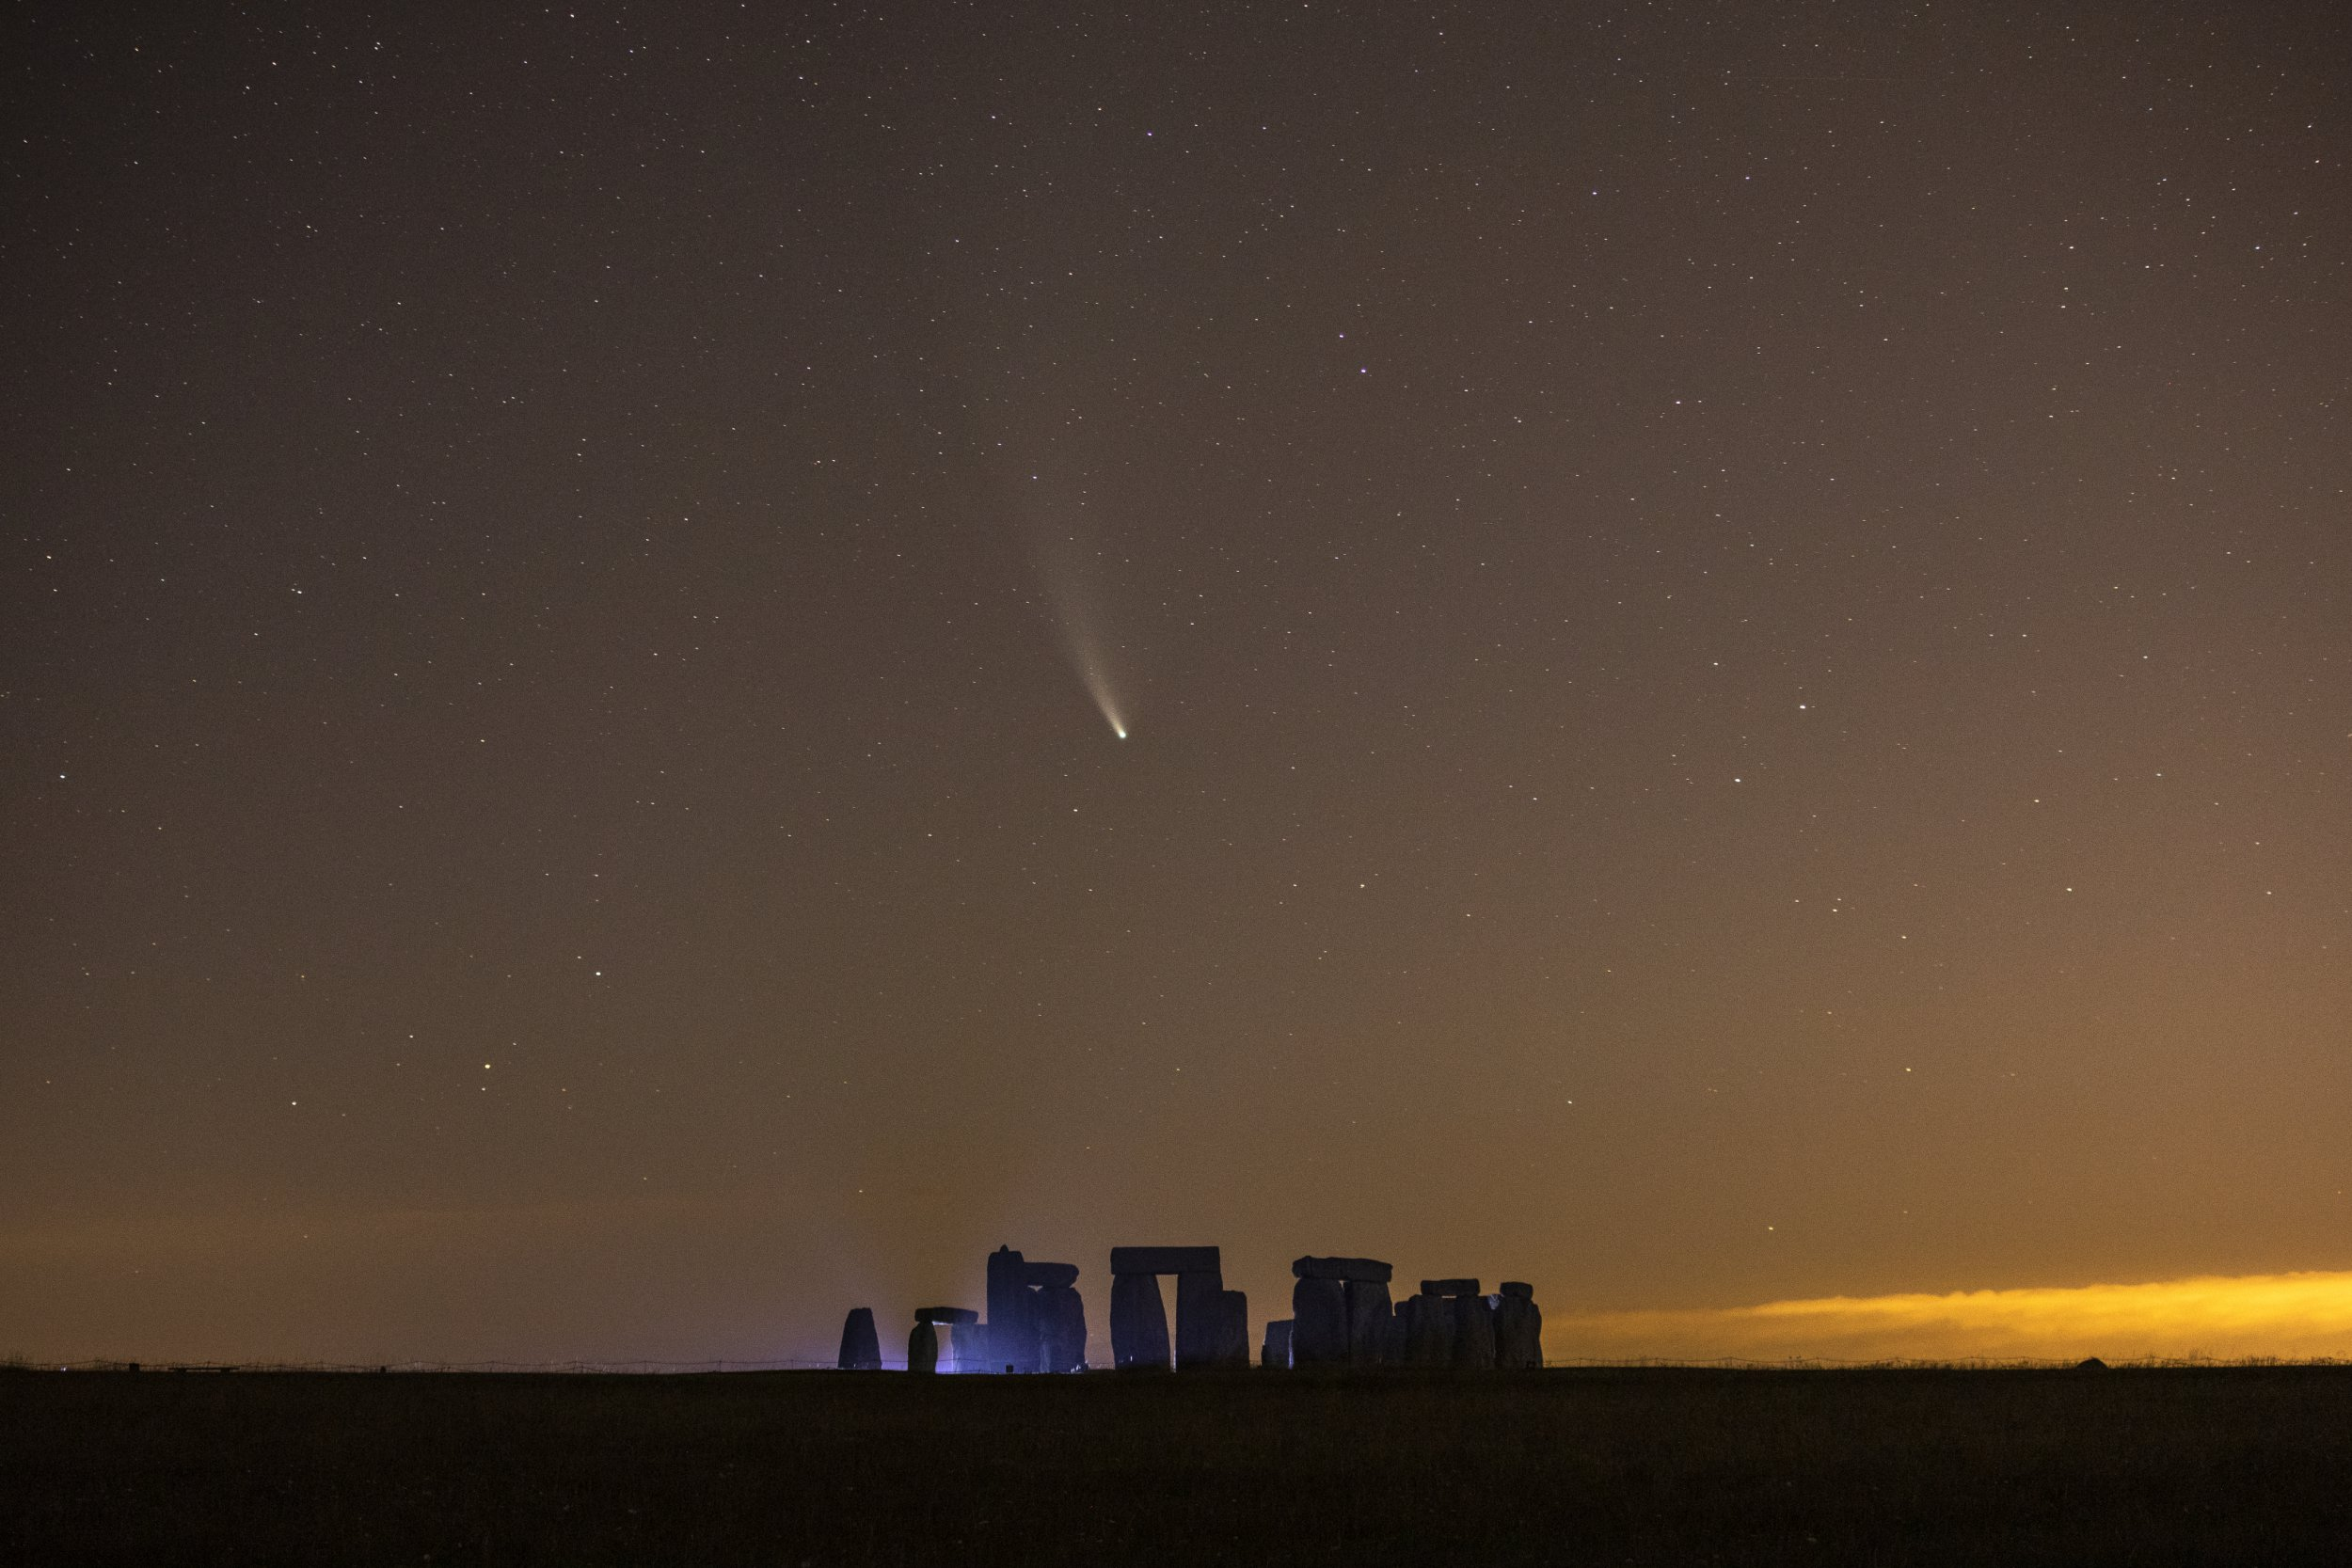 European Best Pictures Of The Day - July 21 - SALISBURY, ENGLAND - JULY 21: Comet NEOWISE passes over Stonehenge in the early hours of July 21, 2020 in Salisbury, England. Comet NEOWISE, the brightest seen in the Northern Hemisphere in 25 years, was discovered by Nasas Near-Earth Object Wide-field Infrared Survey Explorer (NEOWISE) mission on March 27. The comet is currently visible after sunset and will have its closest encounter with Earth on July 23 when it will be around 64 million miles away. (Photo by Dan Kitwood/Getty Images)